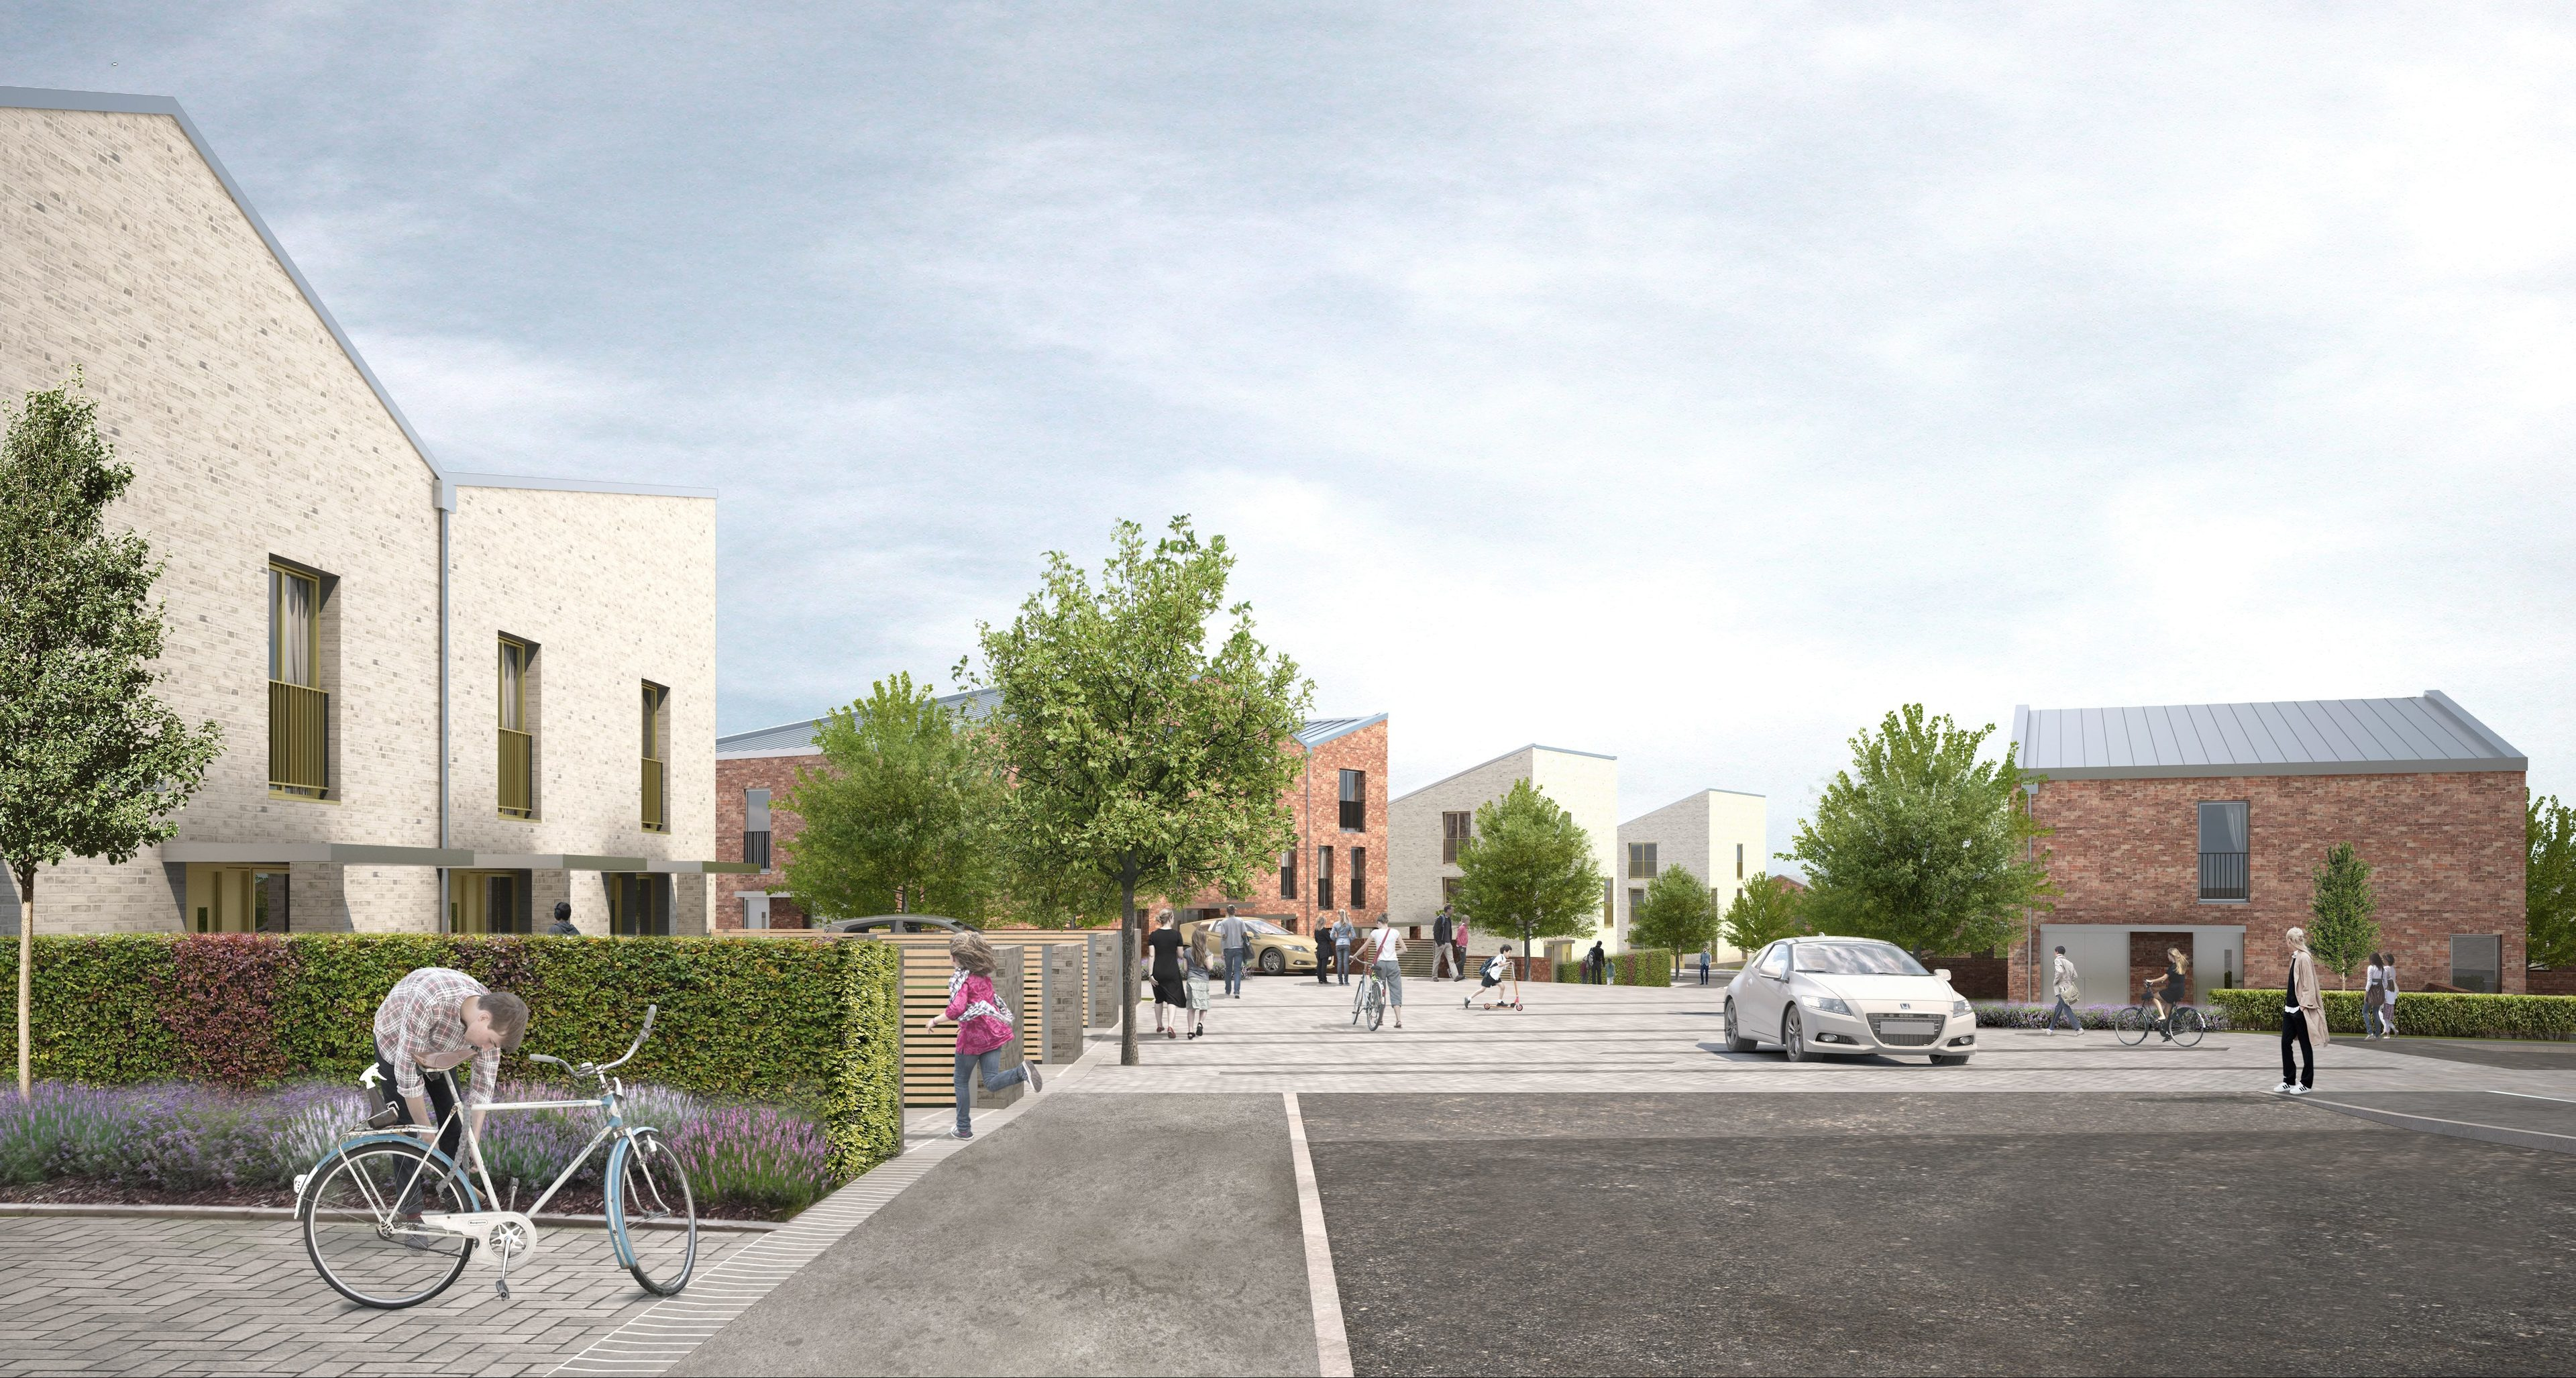 How the first phase of the £26 million development will look